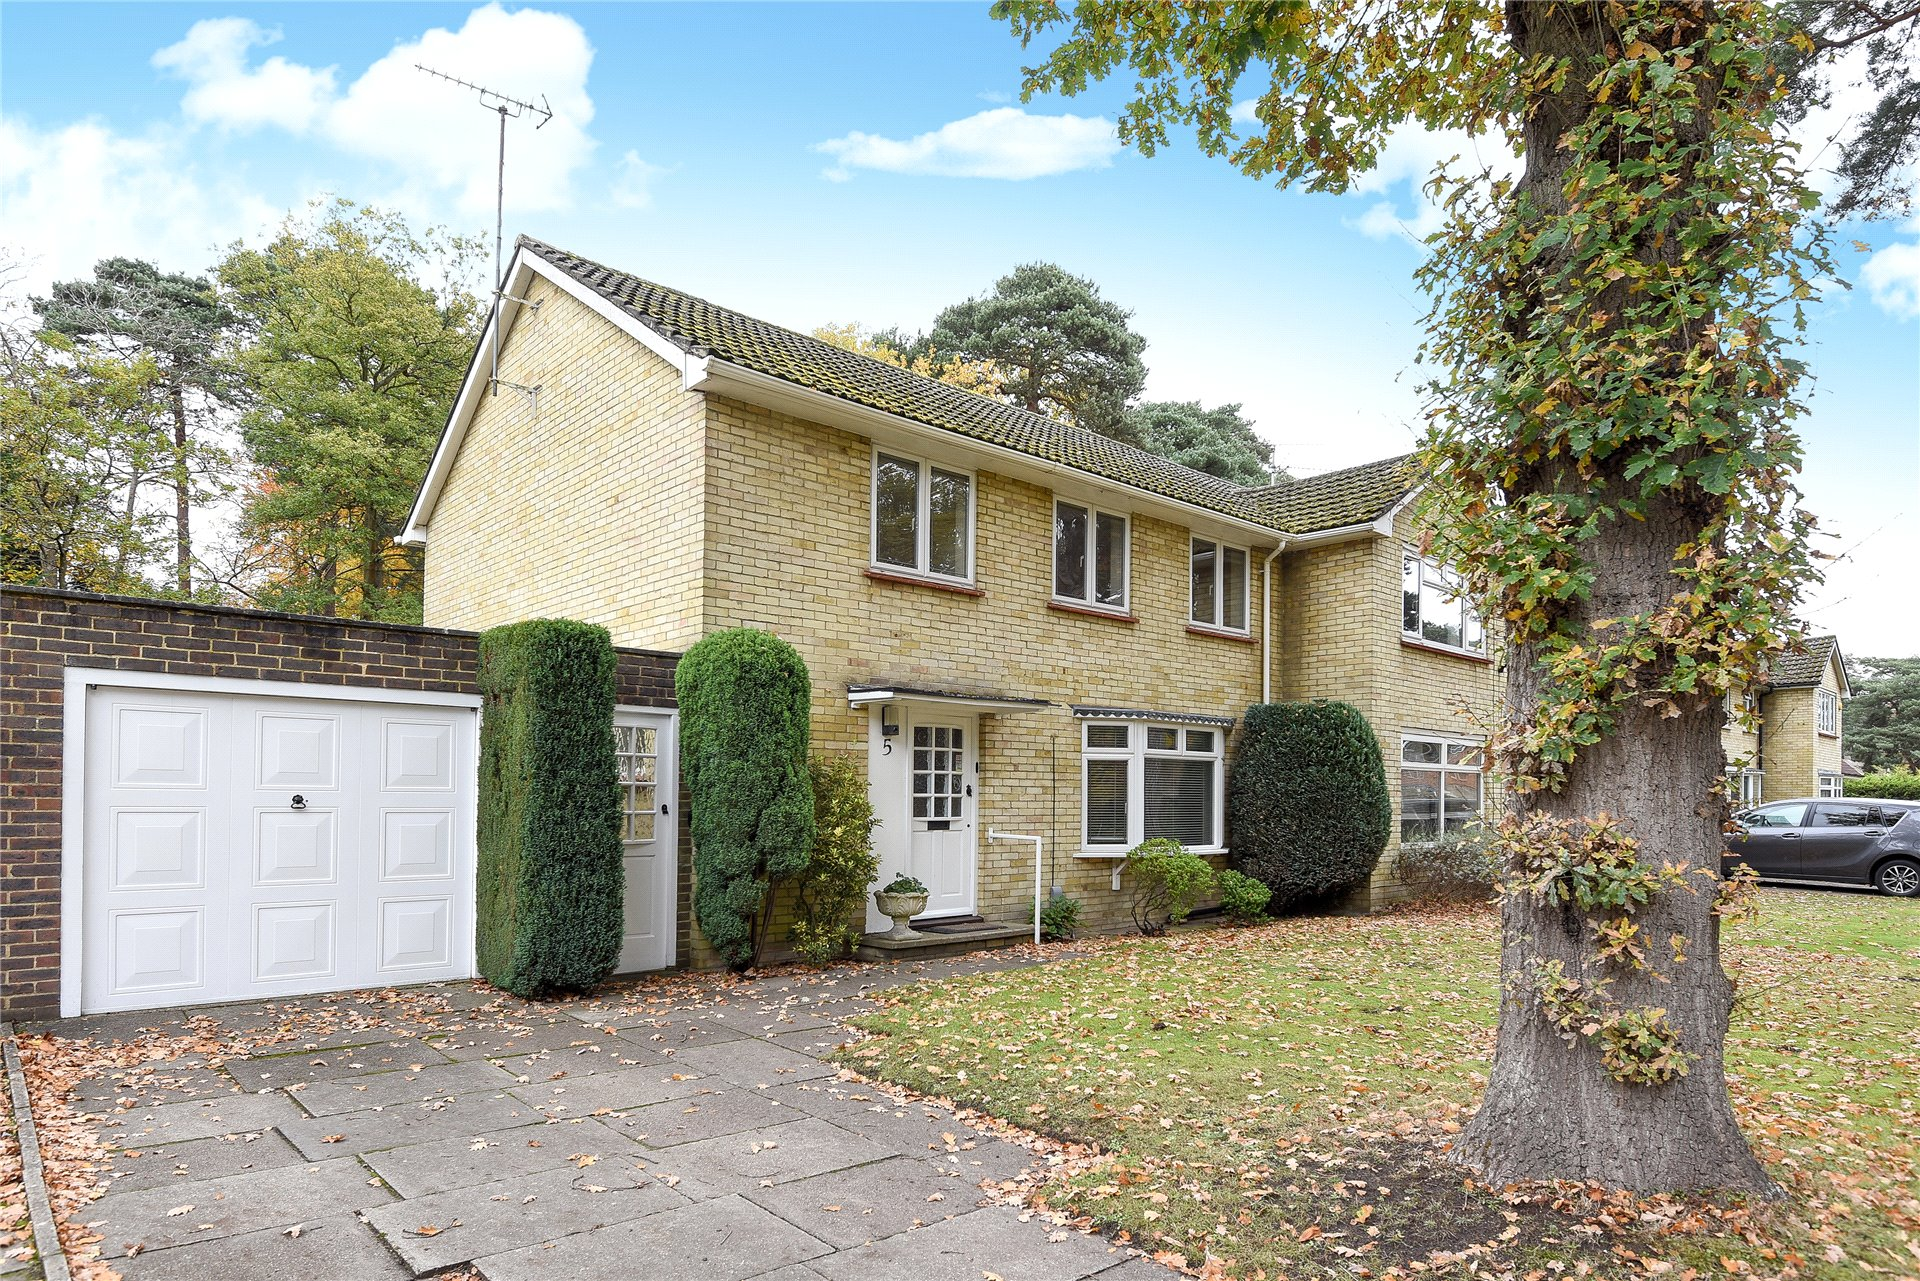 3 Bedrooms Semi Detached House for sale in Nightingale Crescent, Bracknell, Berkshire, RG12